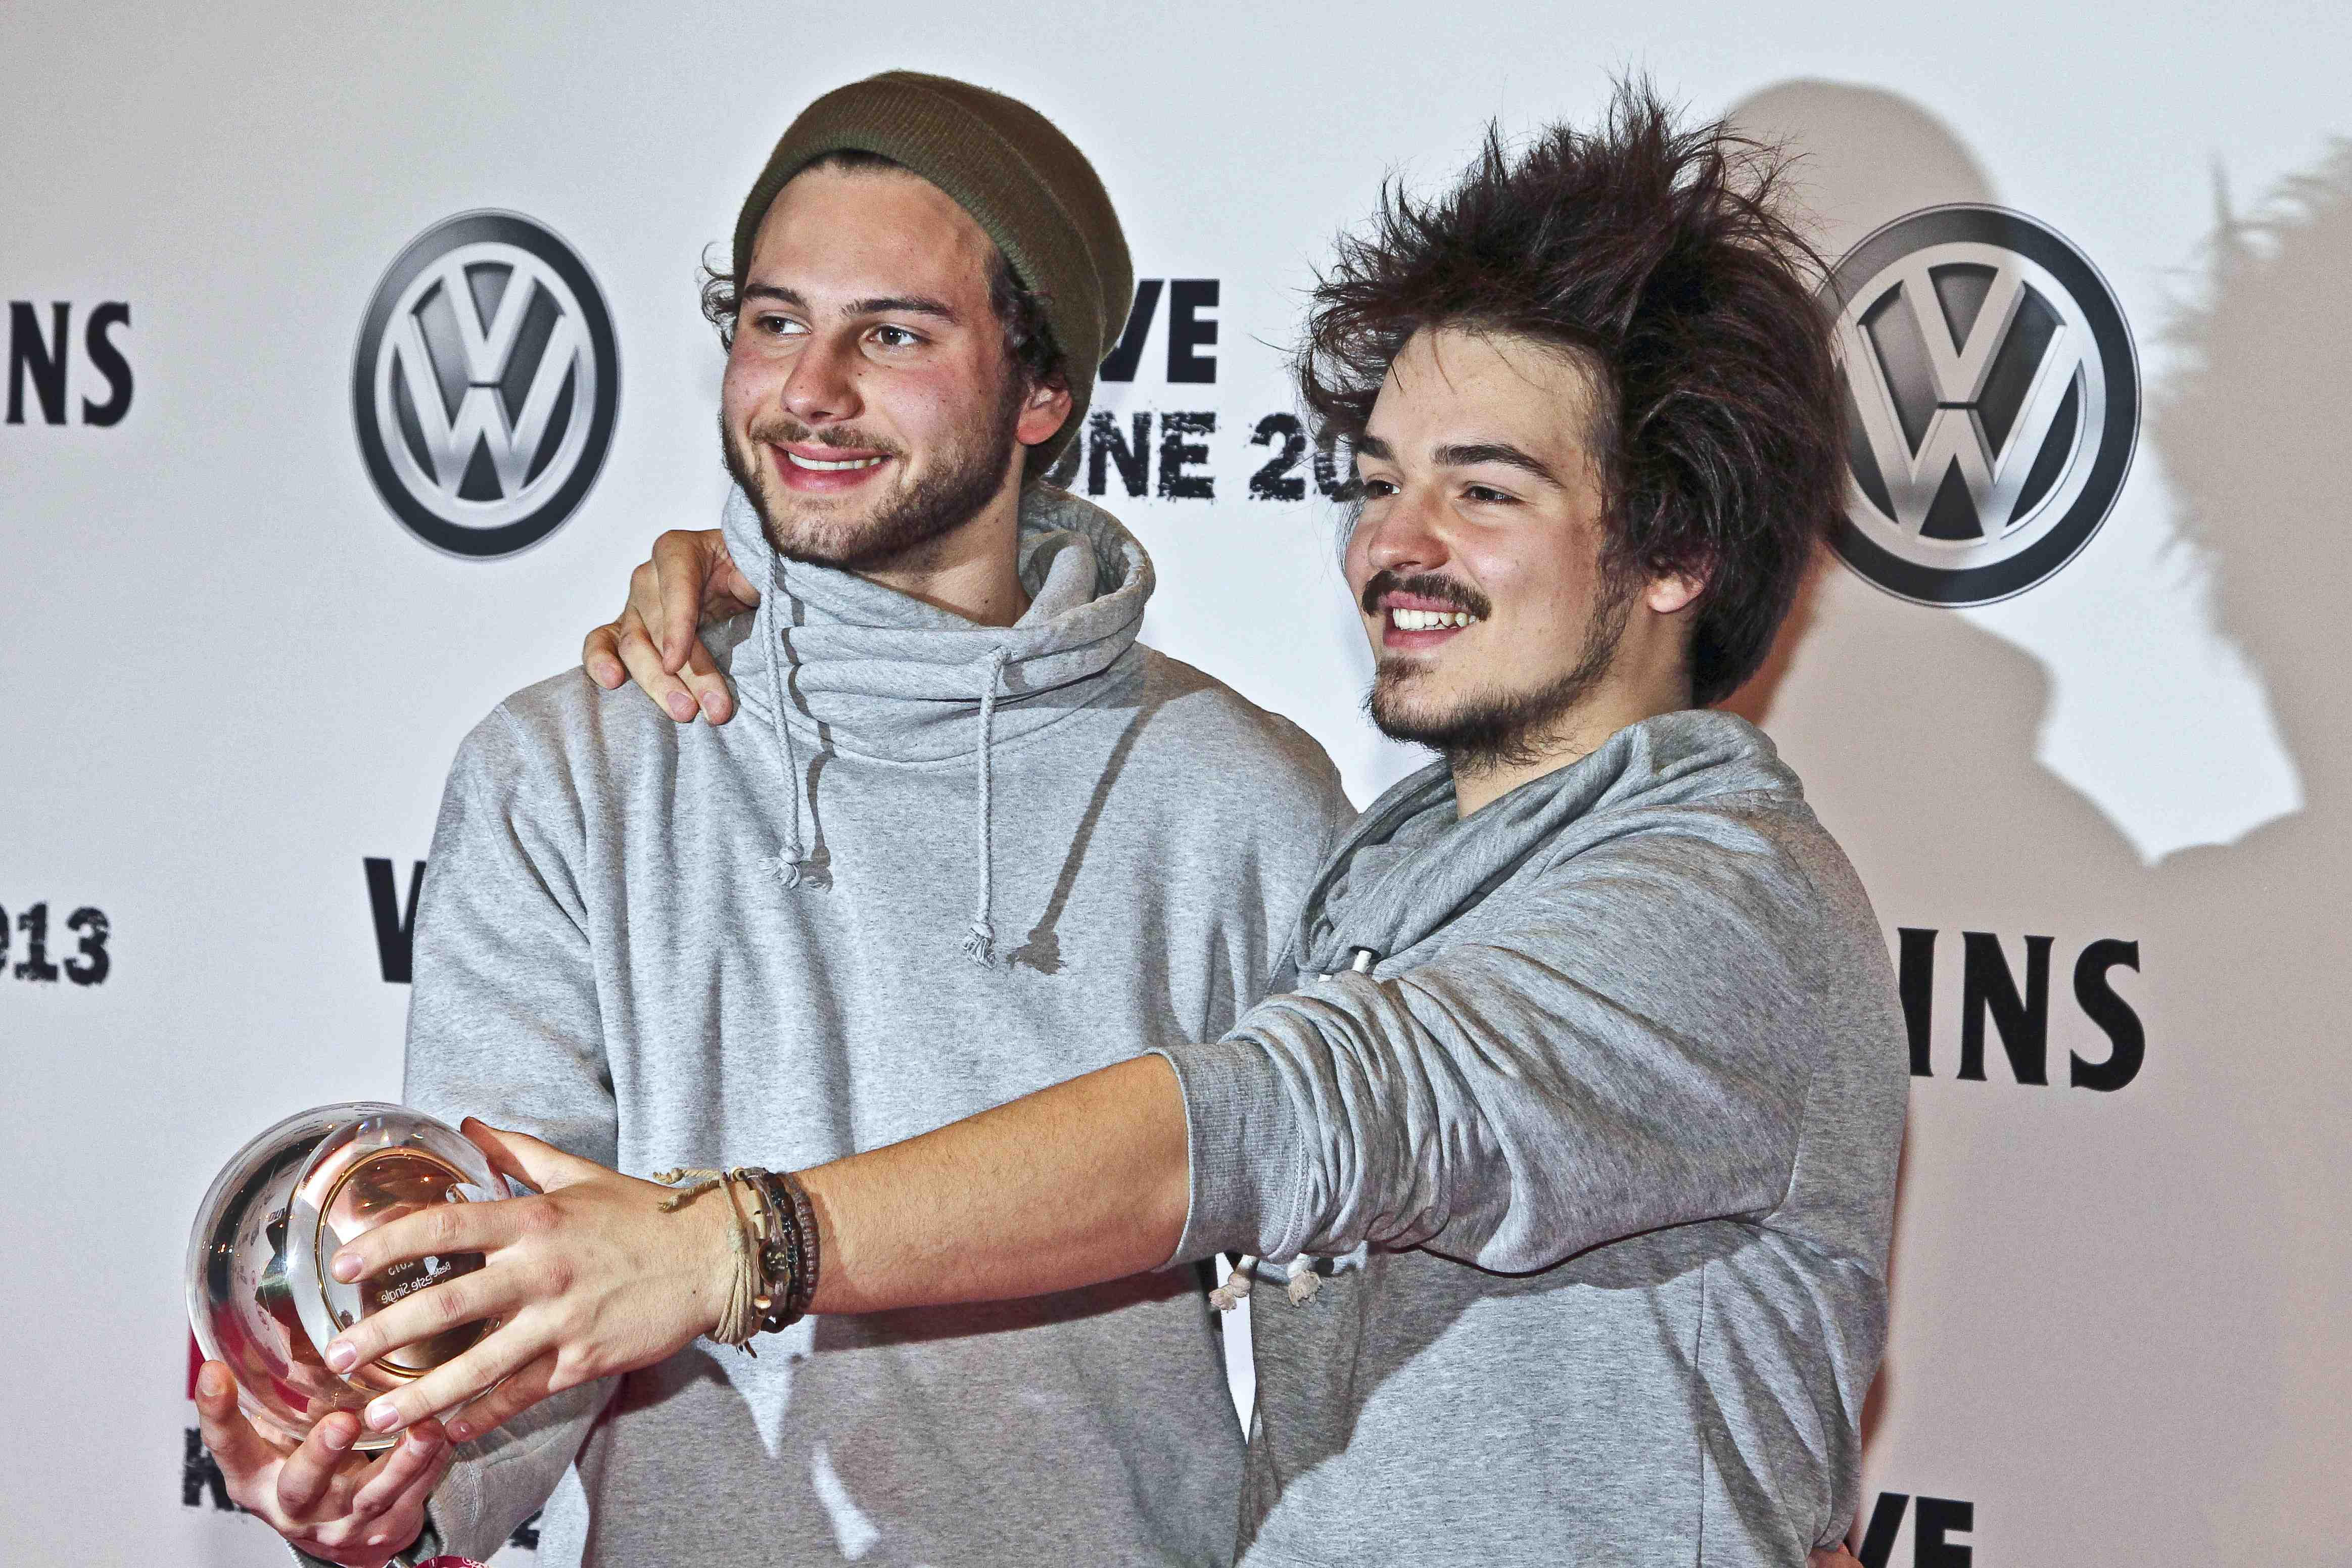 1_Live_Krone_2013_Milky_Chance_1_edited